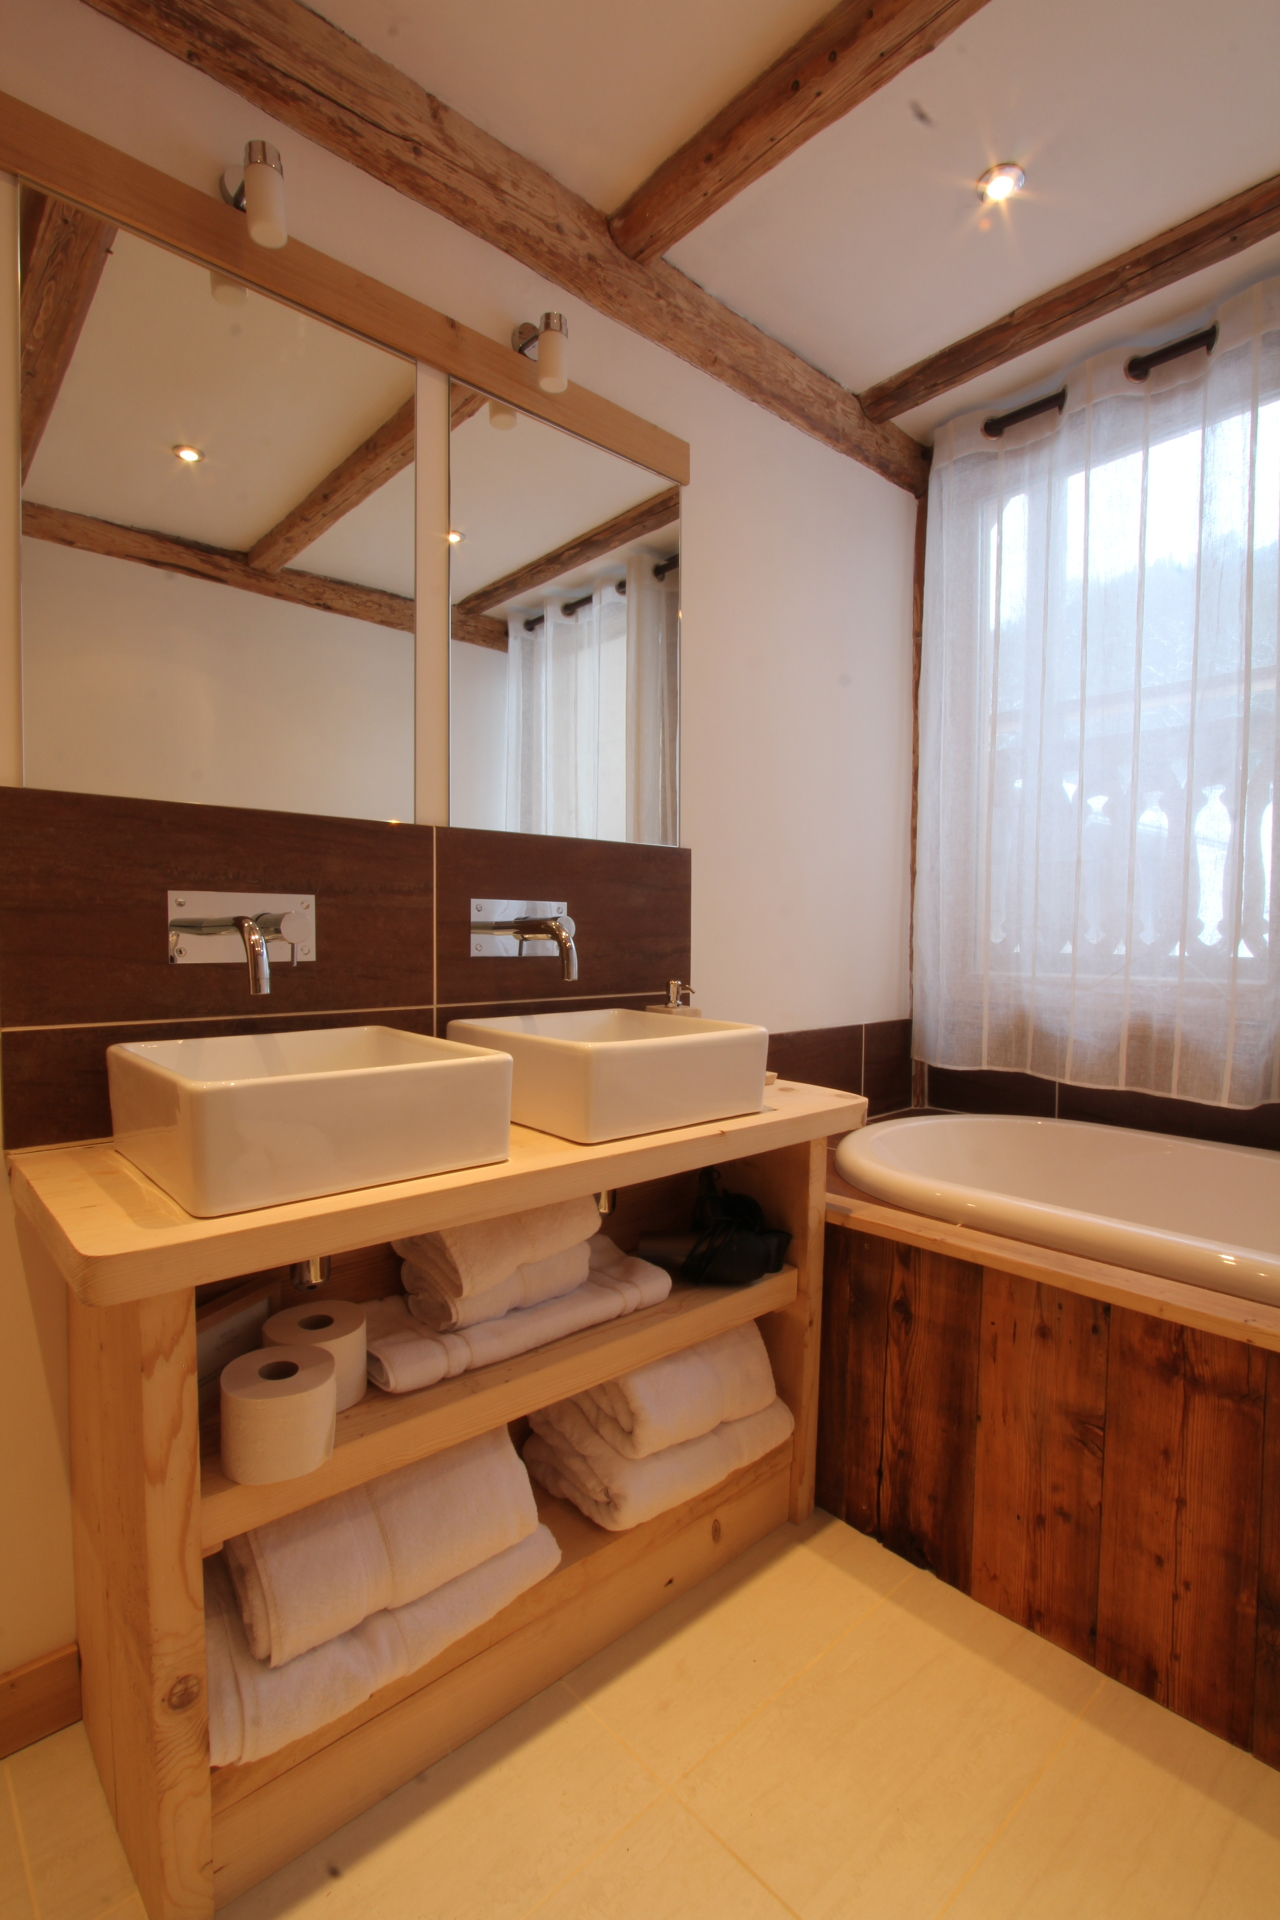 Luxury chalet bathroom | Renovation Solutions